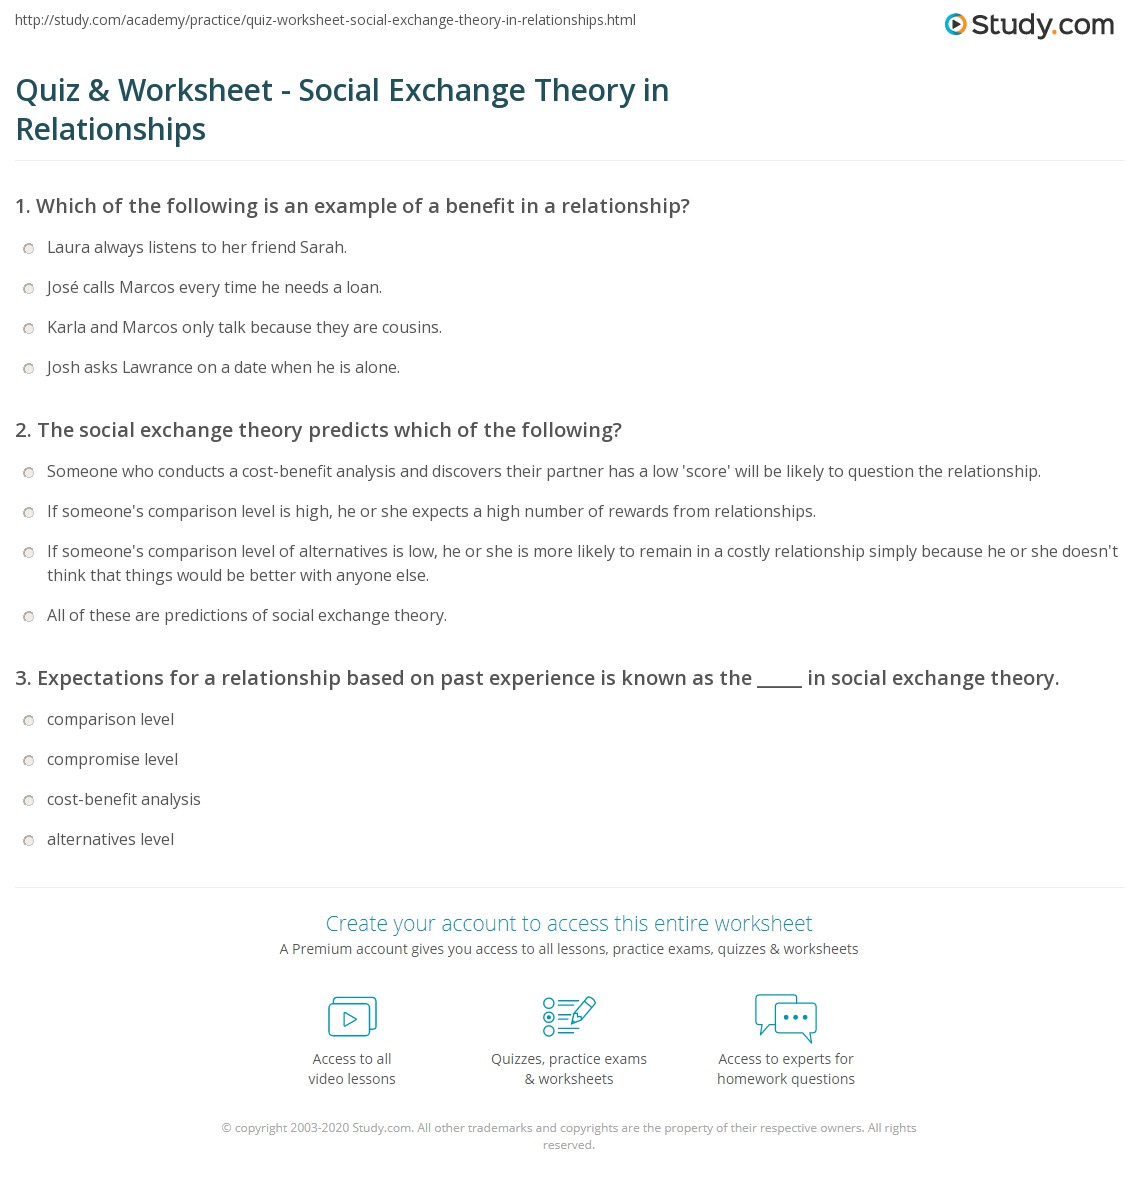 quiz worksheet social exchange theory in relationships com print social exchange theory in relationships definition examples predictions worksheet